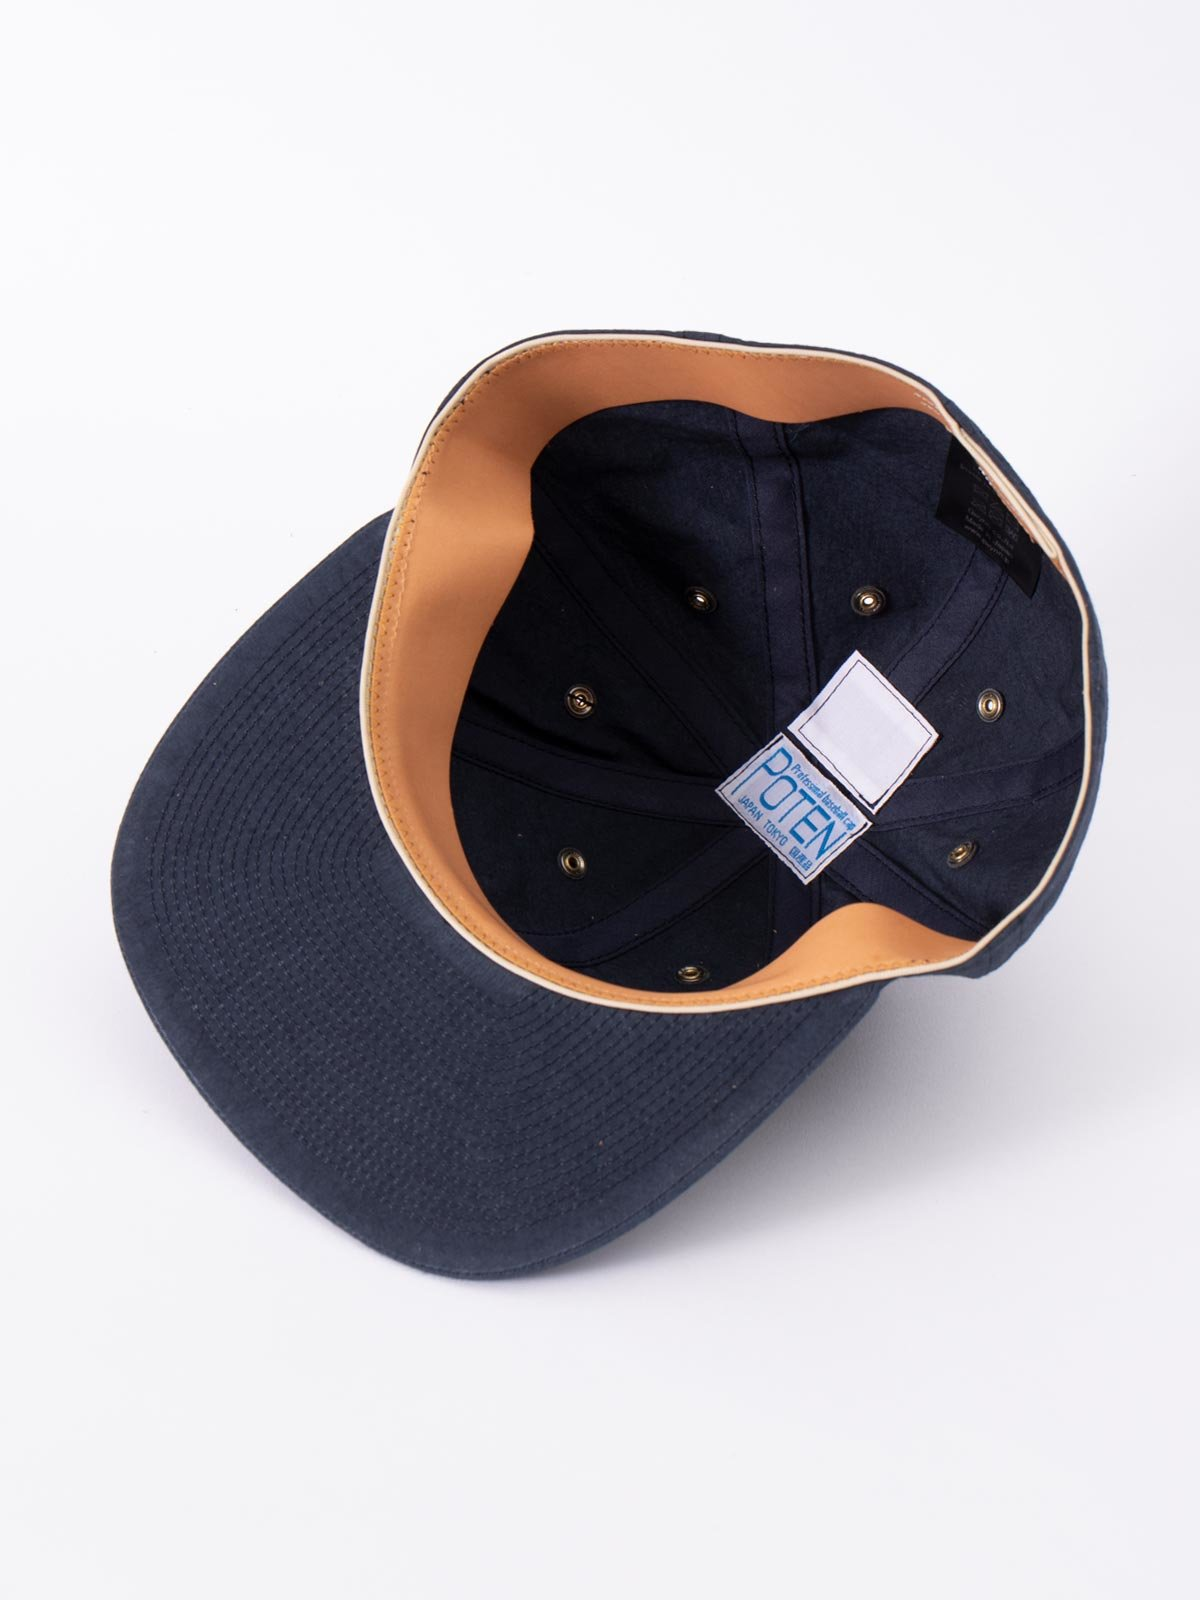 NAVY SPECIAL DYED COTTON / LINEN CAP - Image 4